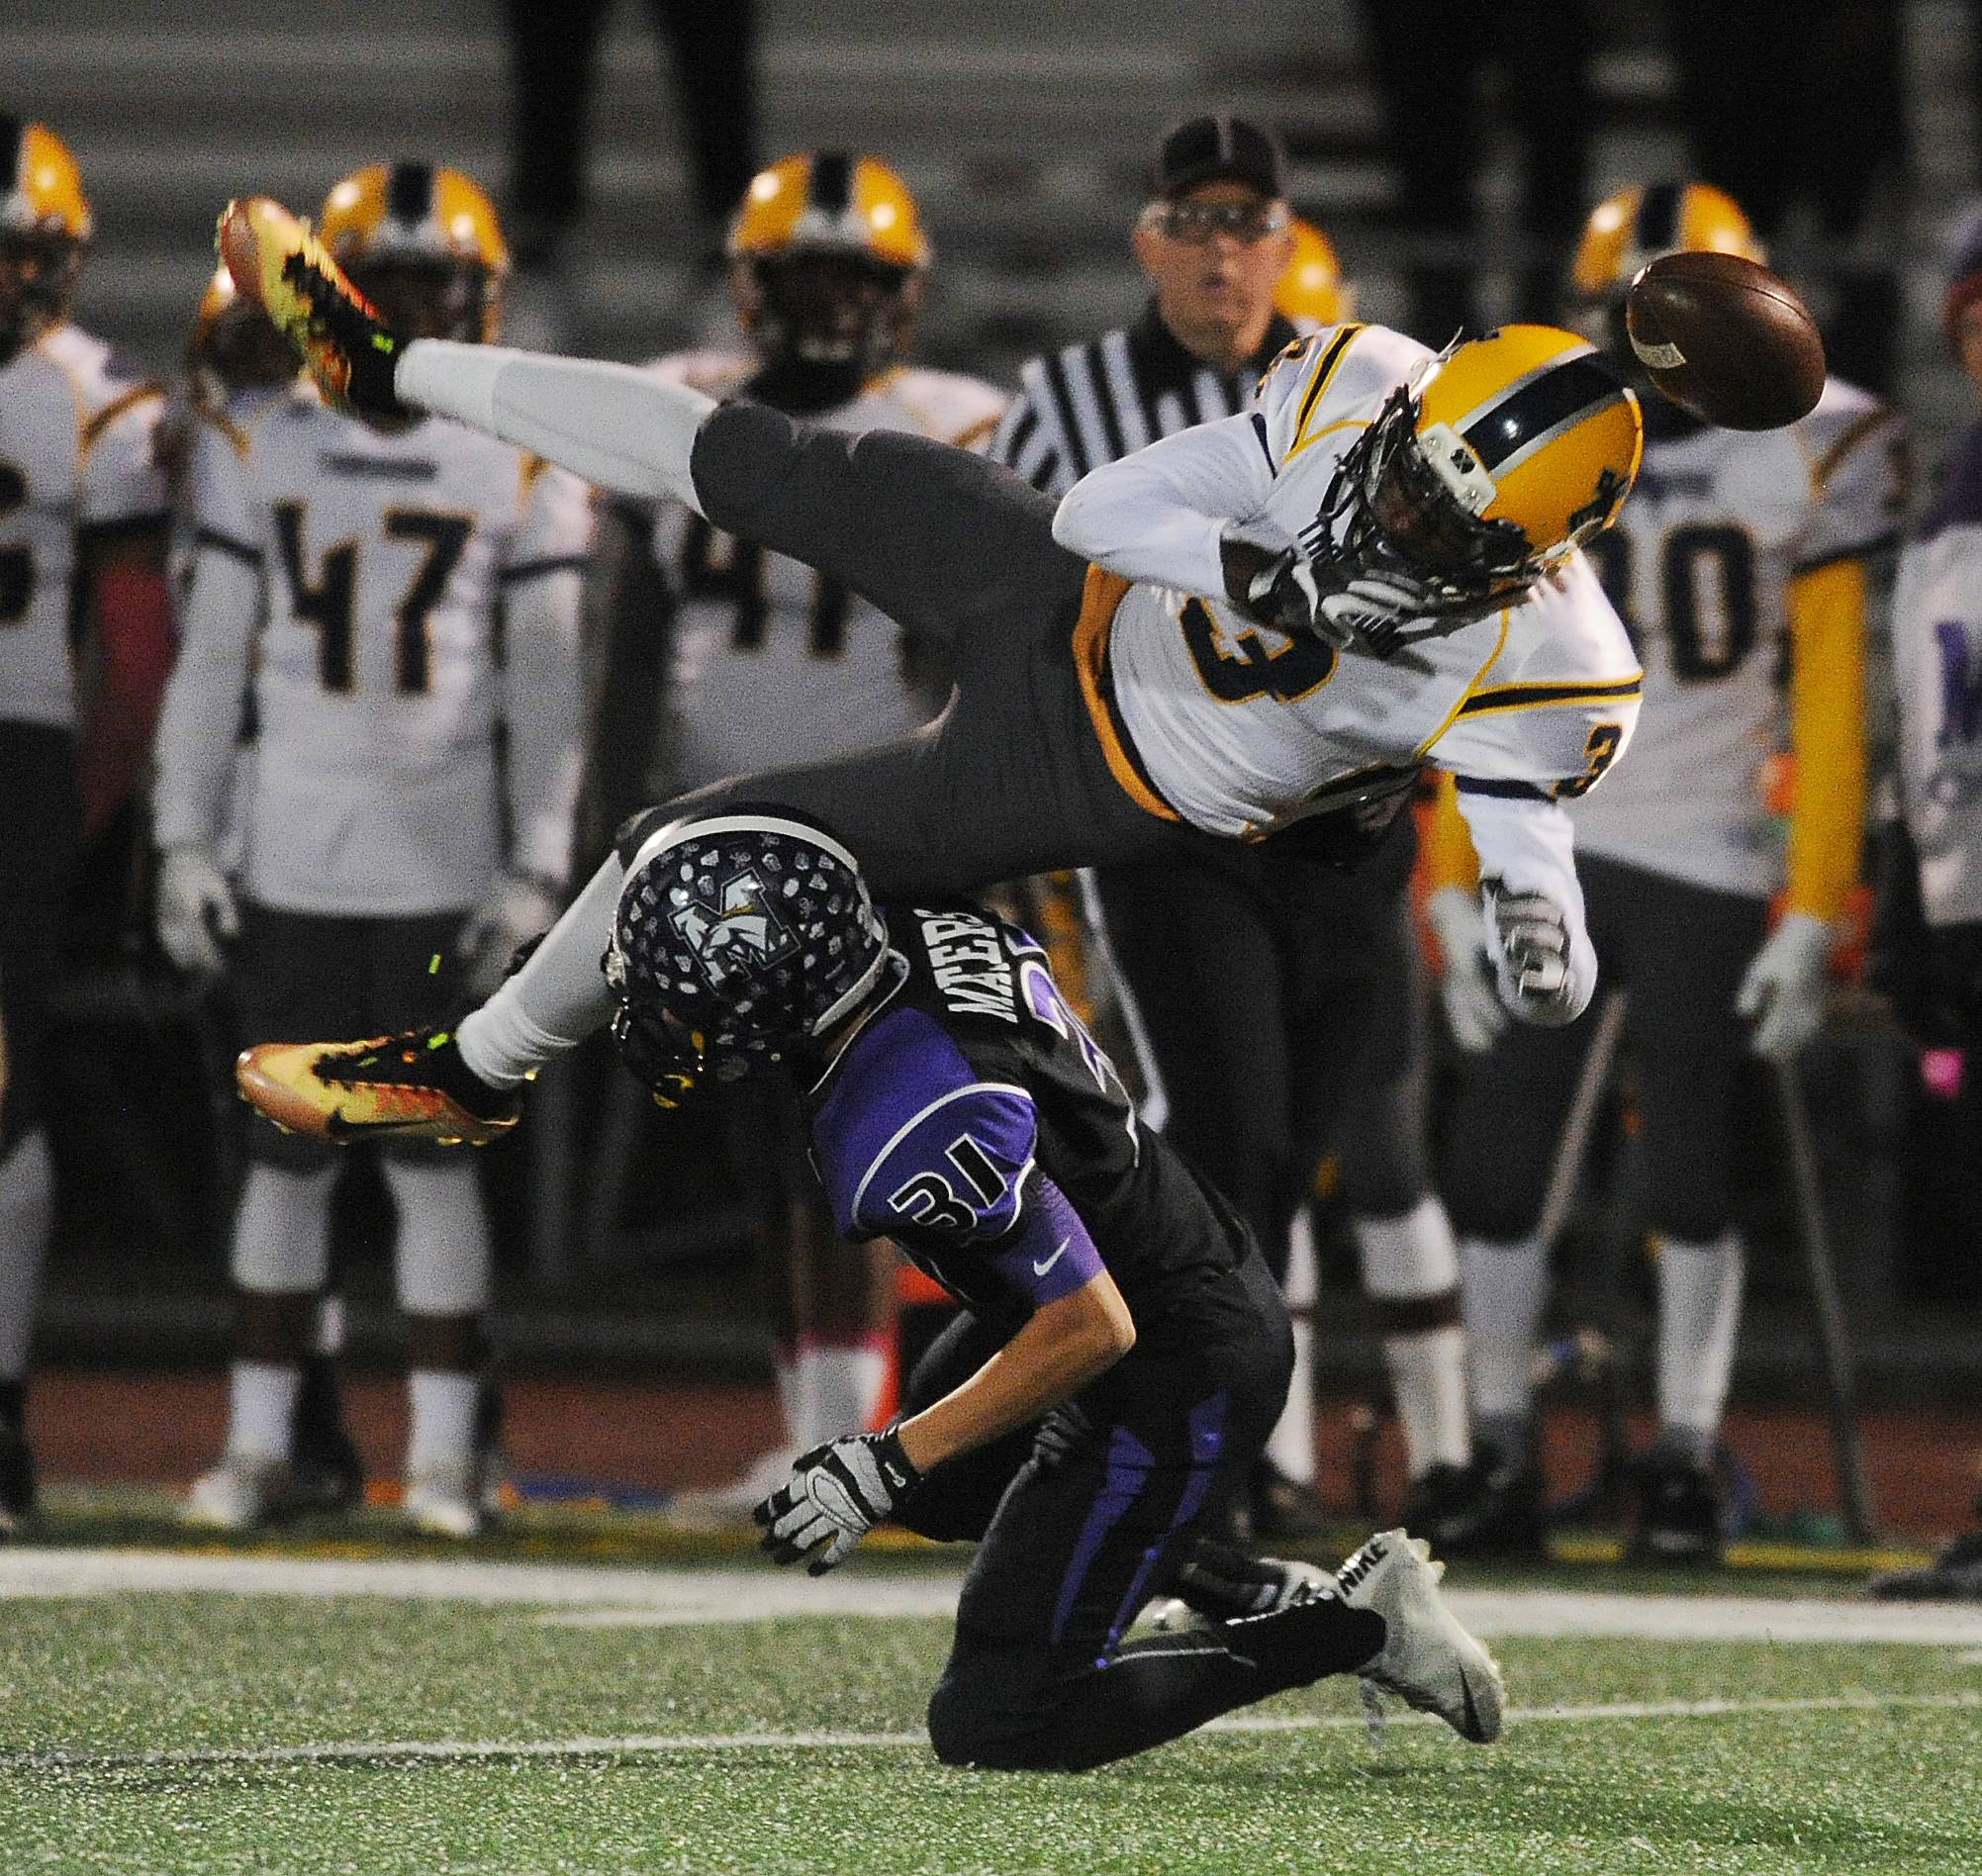 Rolling Meadows' Justin Masters sends Thornwood's DeMaris Williams flying on this incomplete pass play in the first half Friday at Meadows.